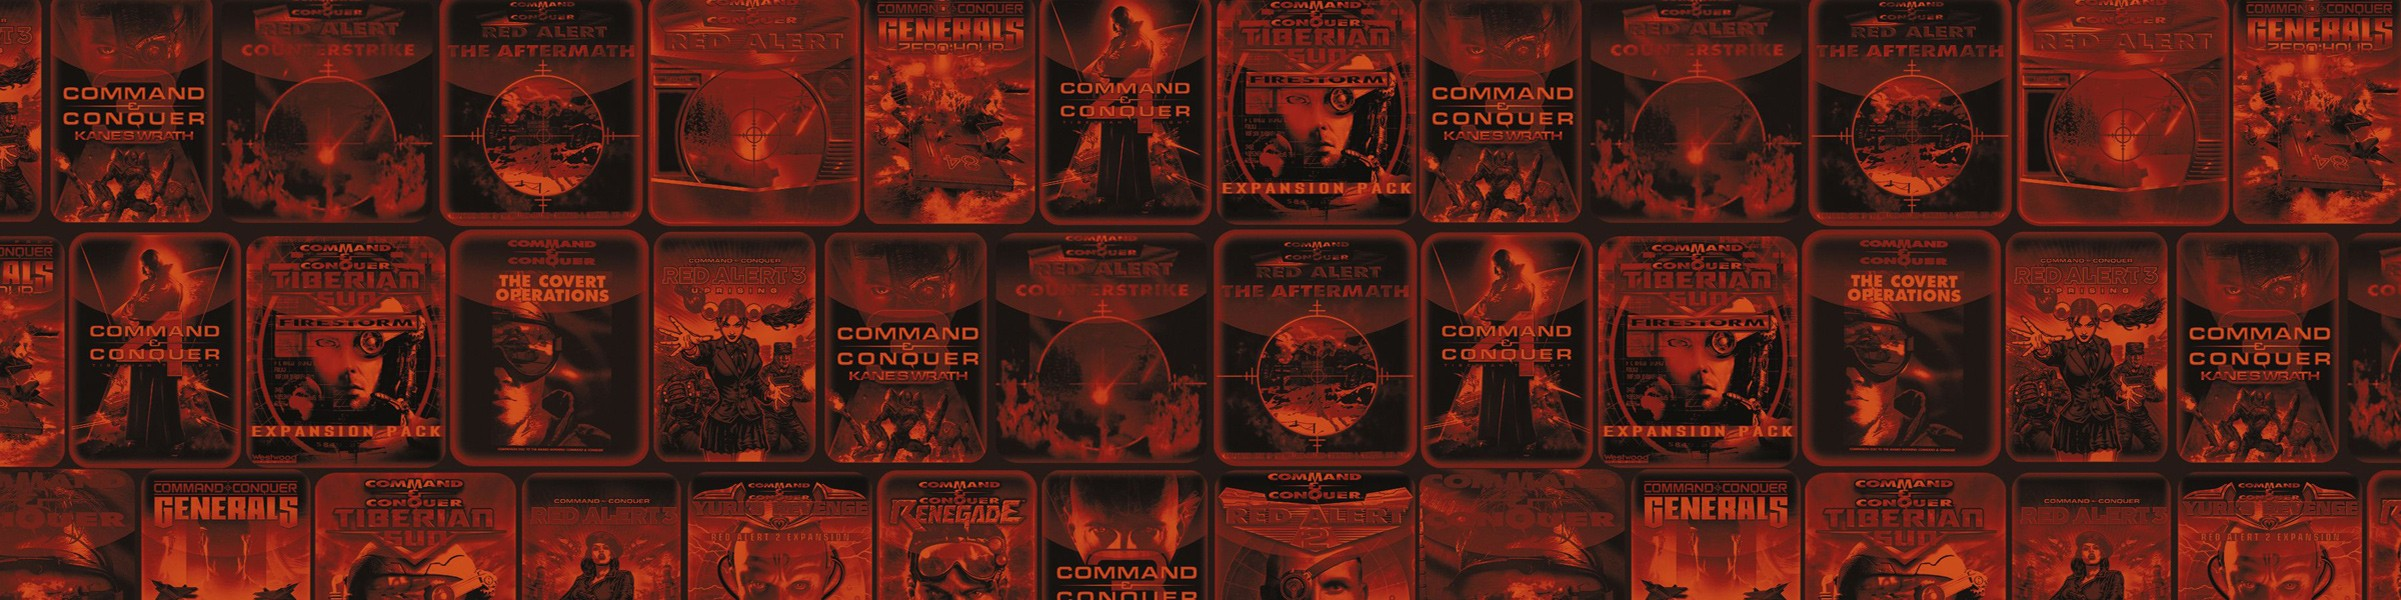 Command And Conquer Ultimate Collection: Command & Conquer™ The Ultimate Collection For PC